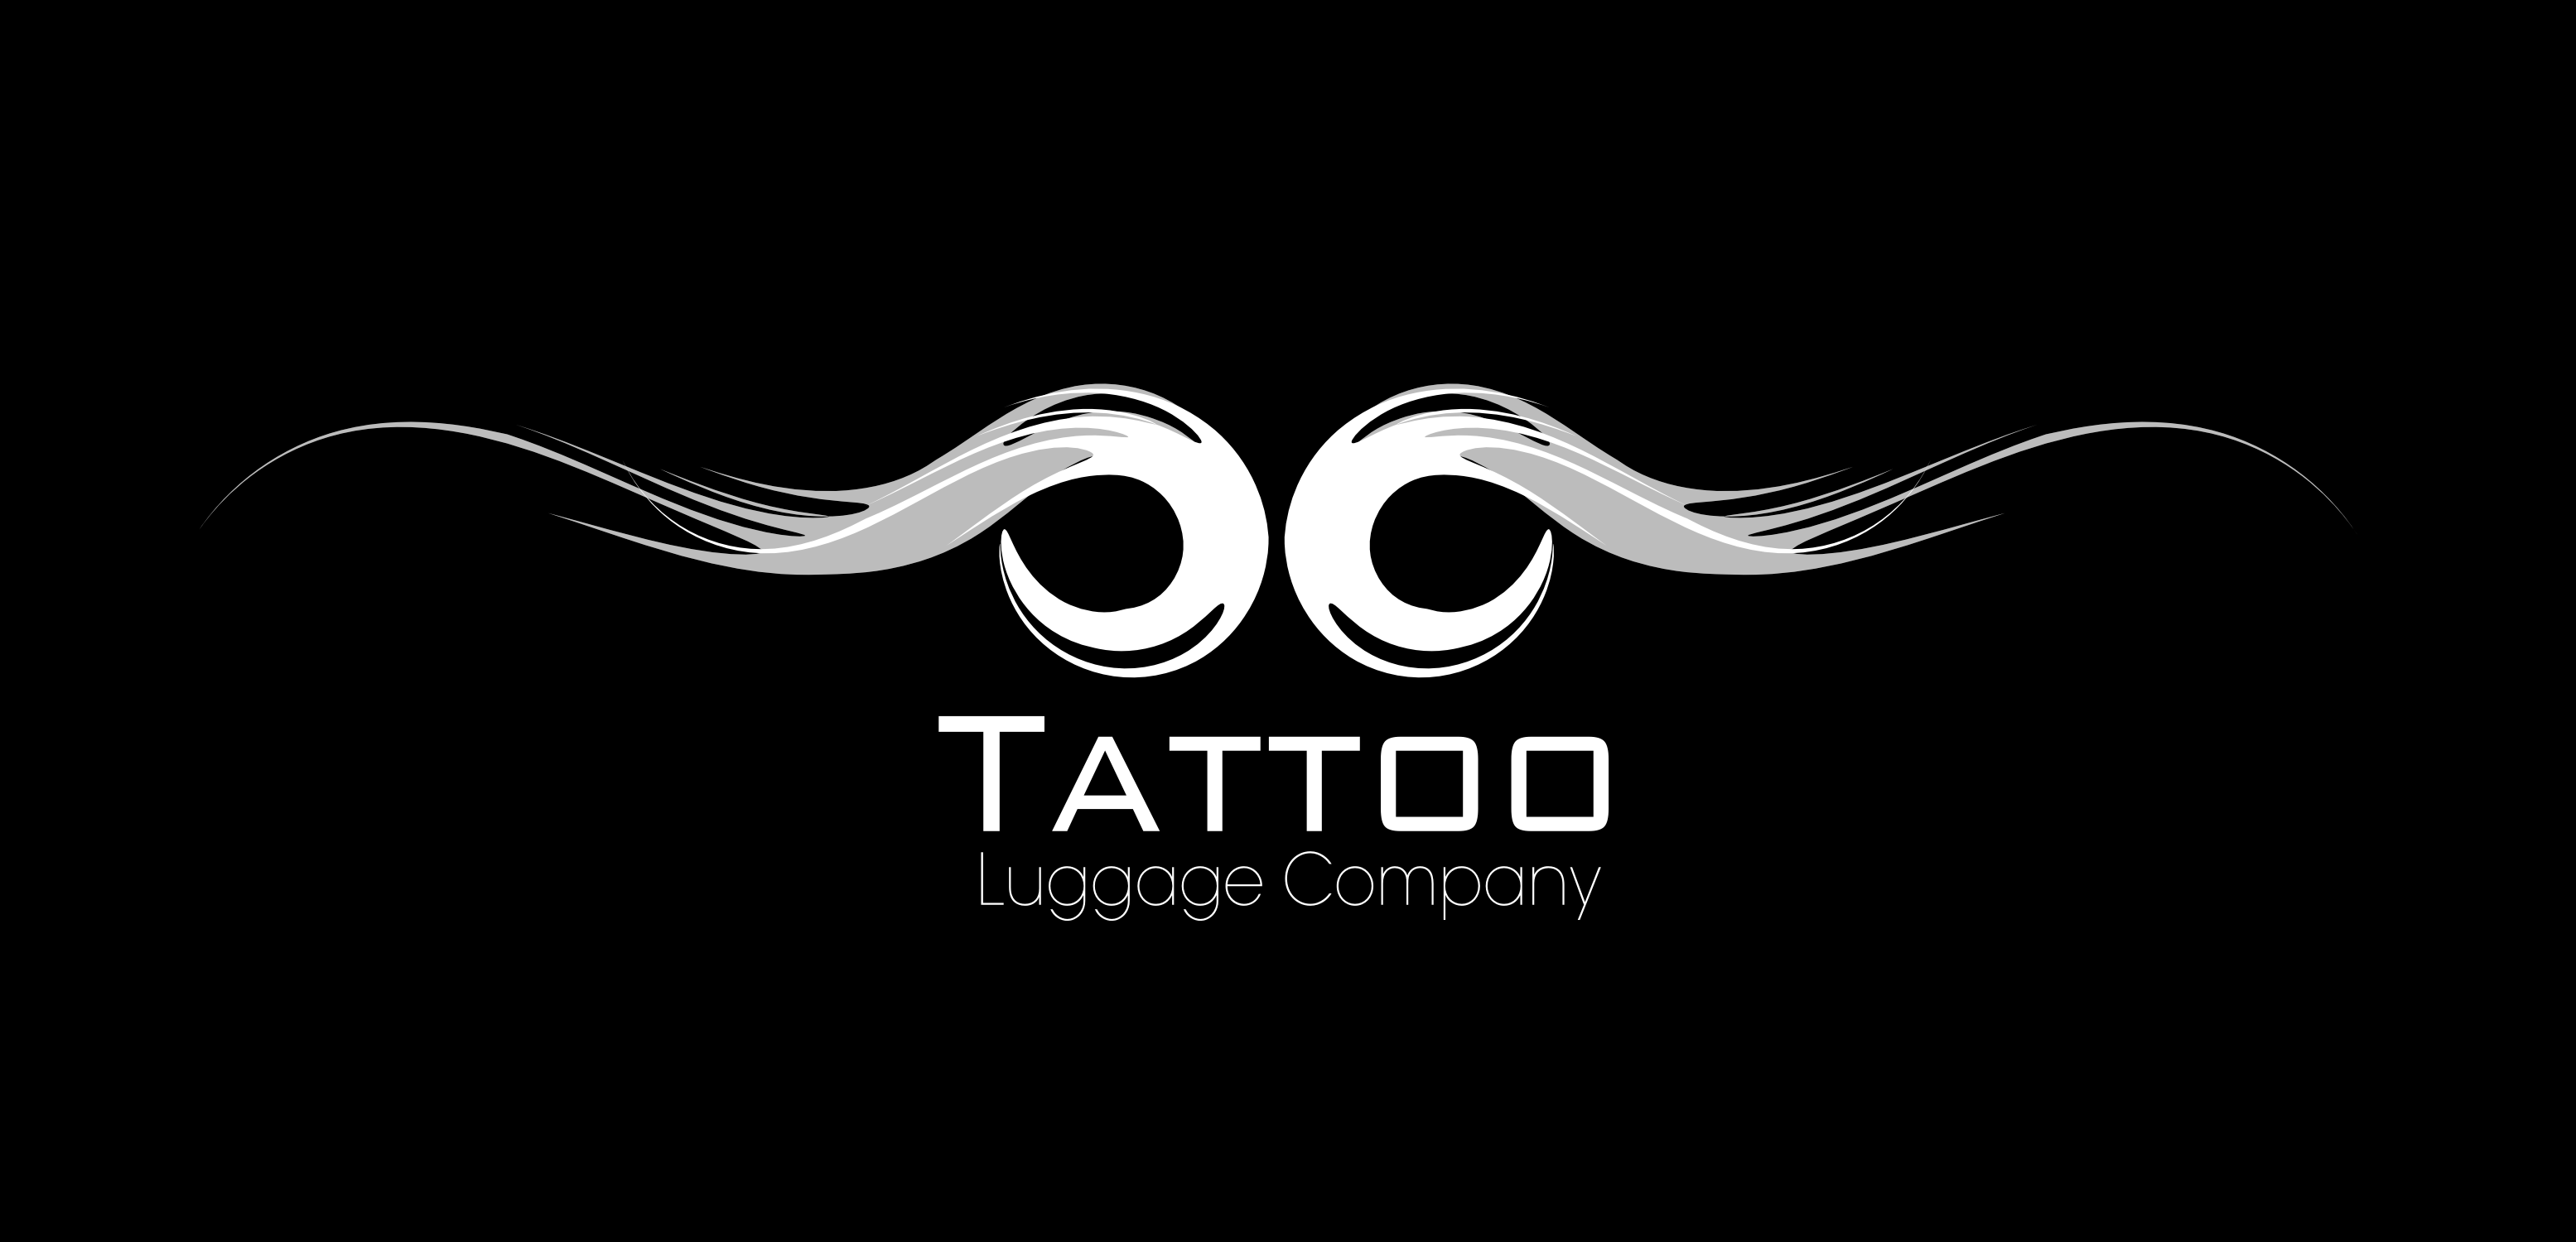 Logo Design by Arindam Khanda - Entry No. 58 in the Logo Design Contest Artistic Logo Design for Tattoo Luggage Company.